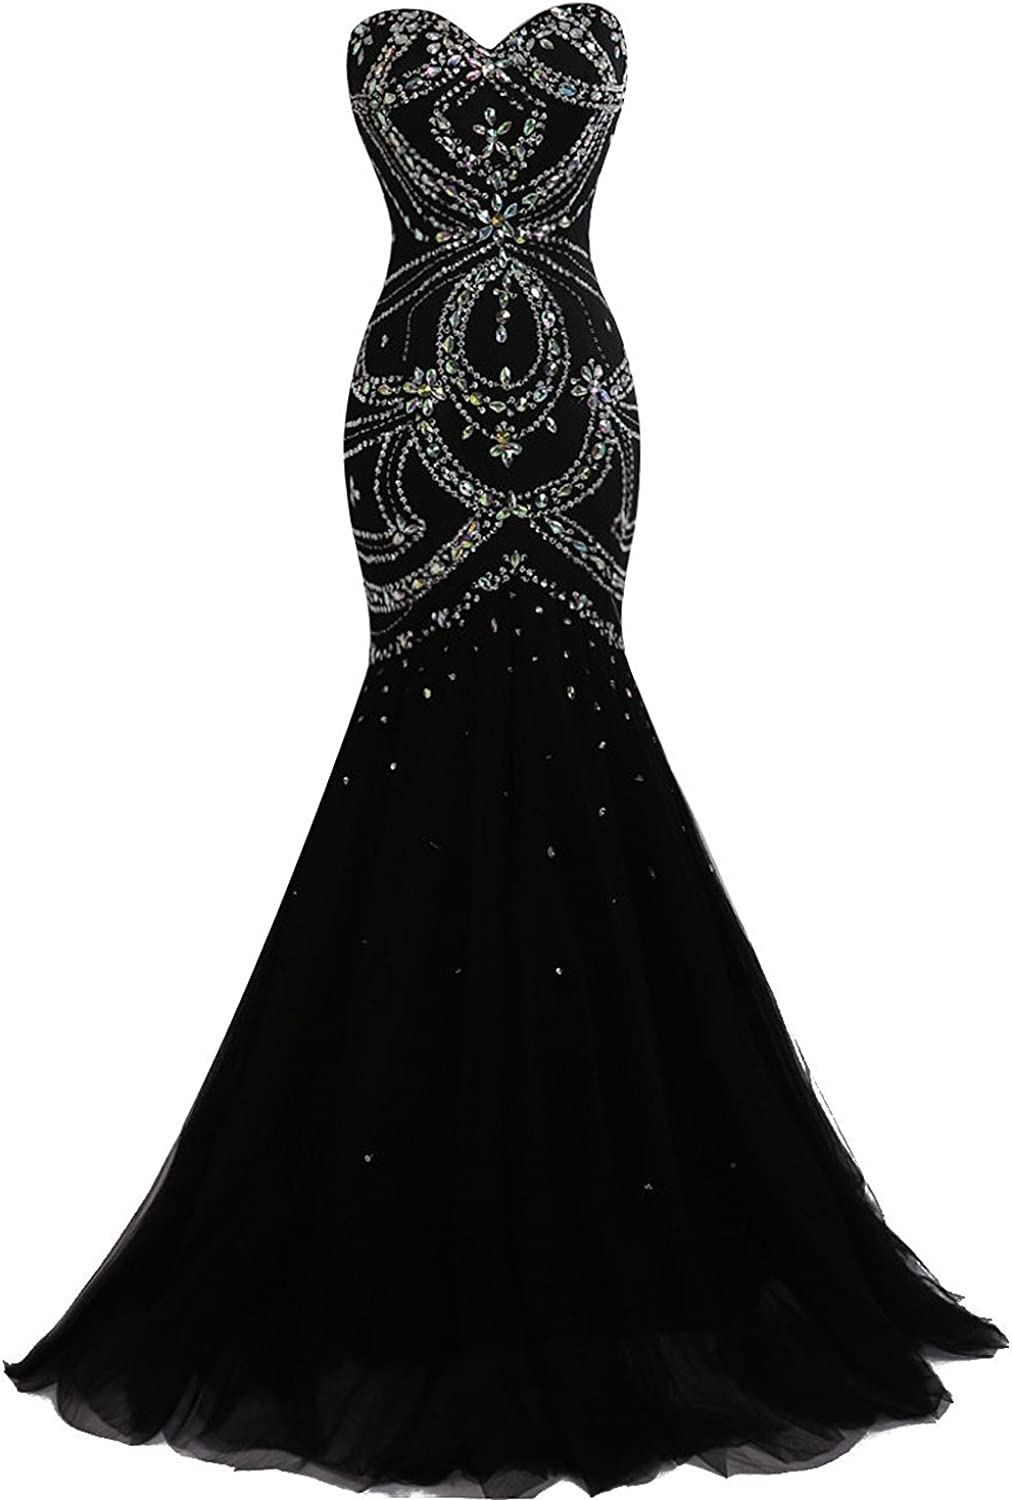 XSWPL Sweetheart Beaded Evening Prom Dress Mermaid Formal Gown